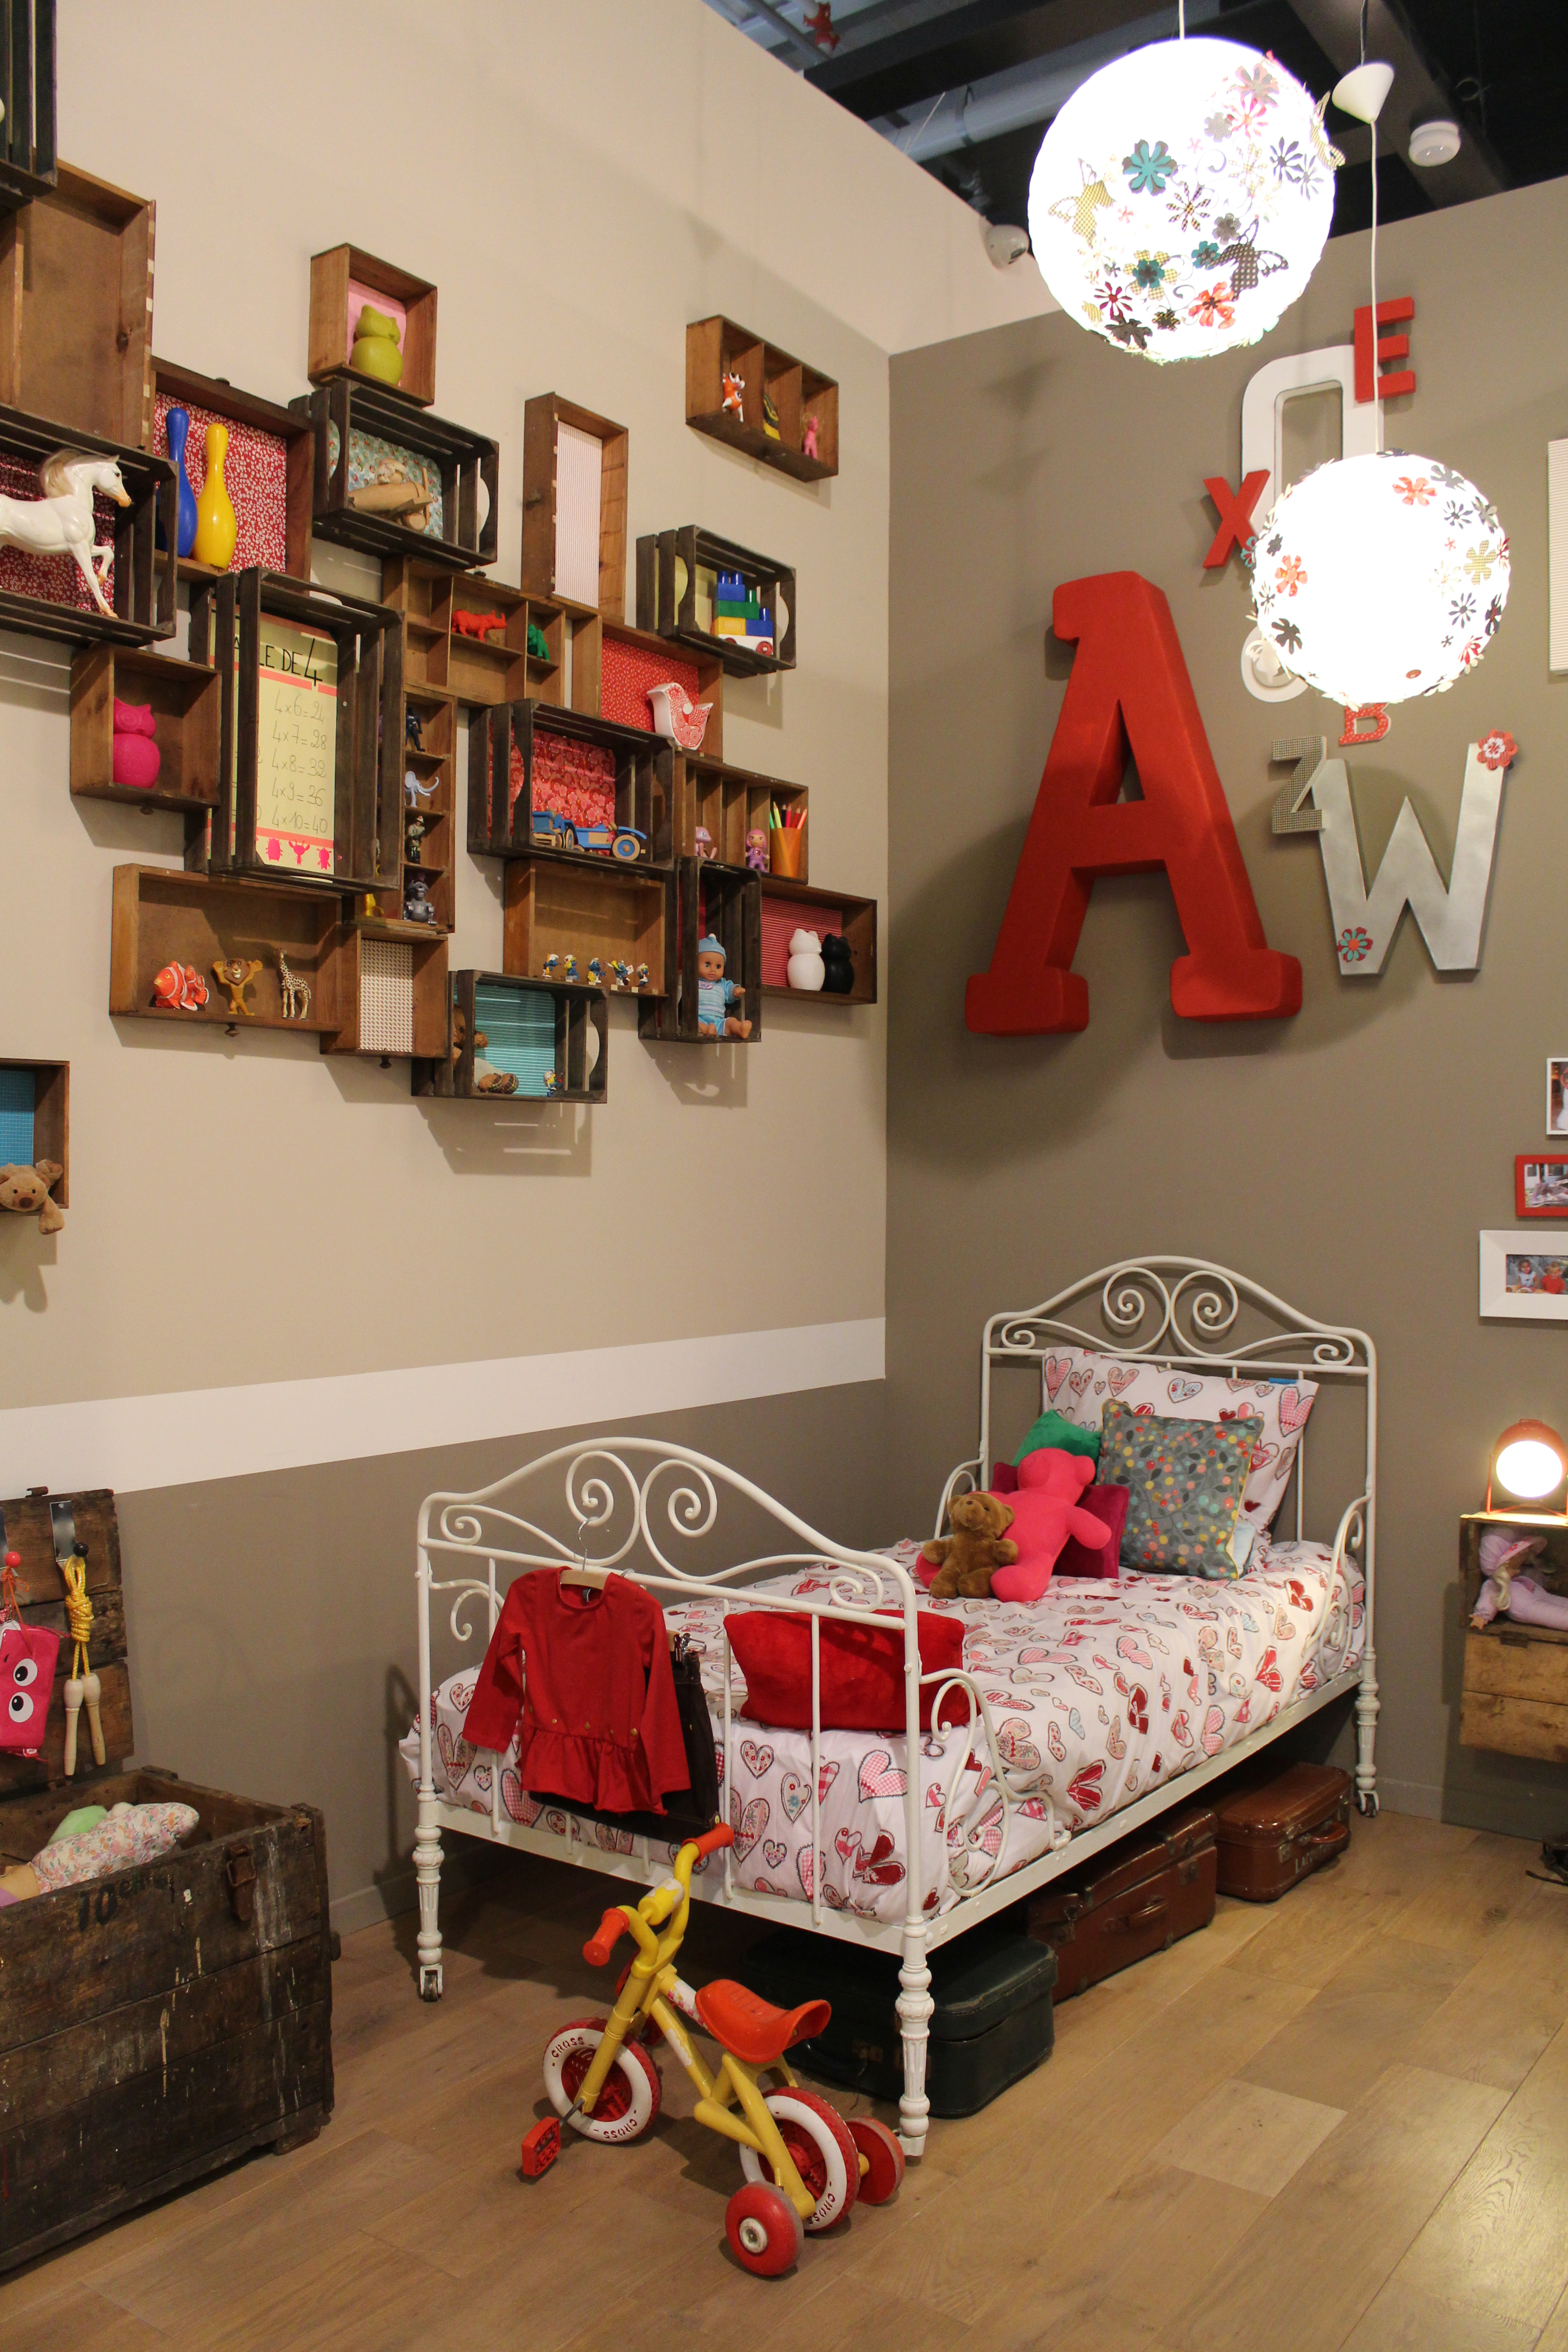 decoration de noel a faire soi meme pour enfant deco de noel exterieur a fabriquer maison. Black Bedroom Furniture Sets. Home Design Ideas